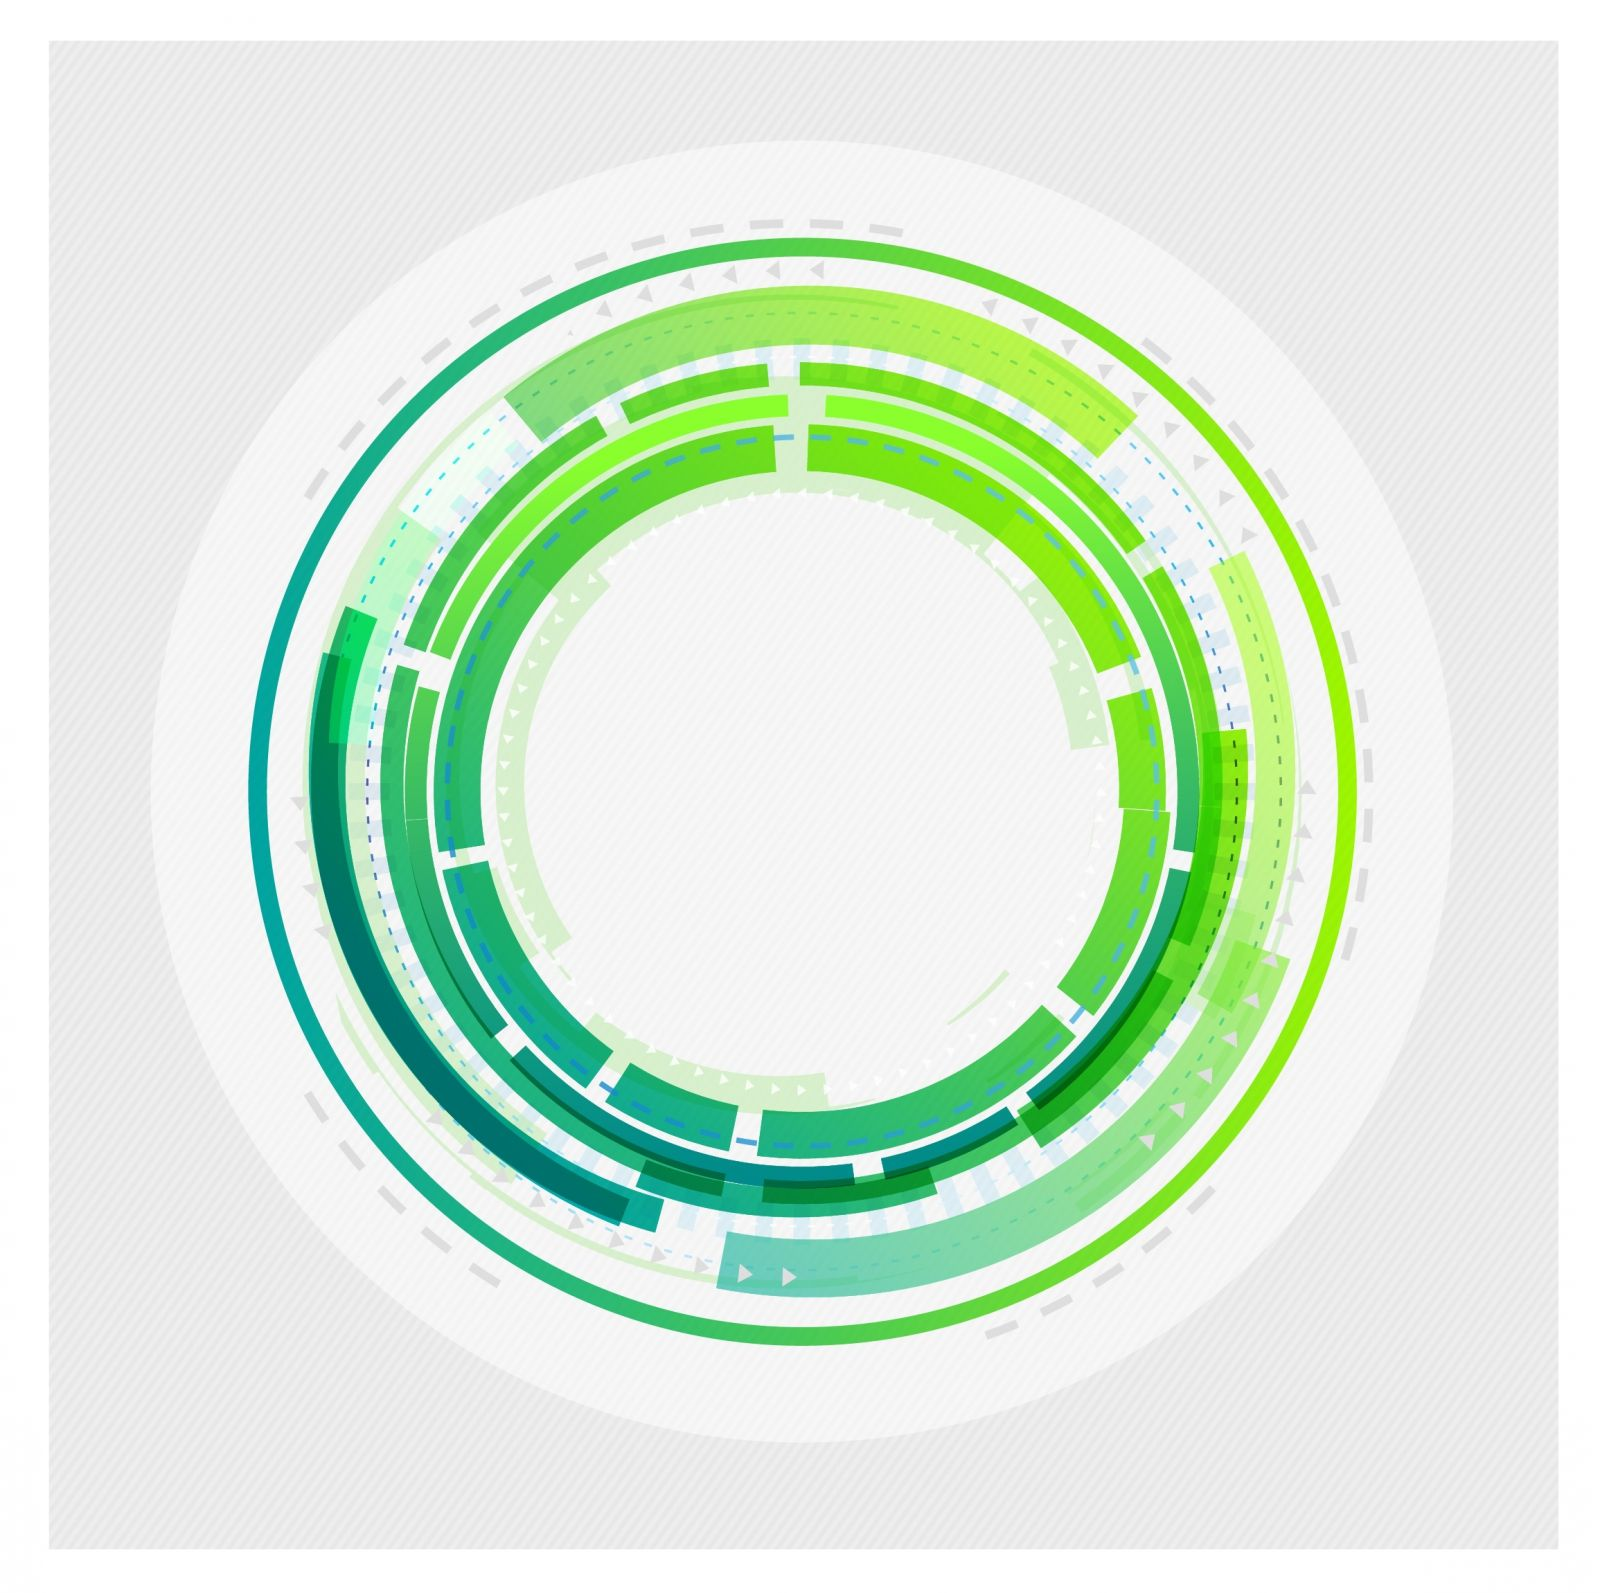 free vector Abstract technology circles background (avec